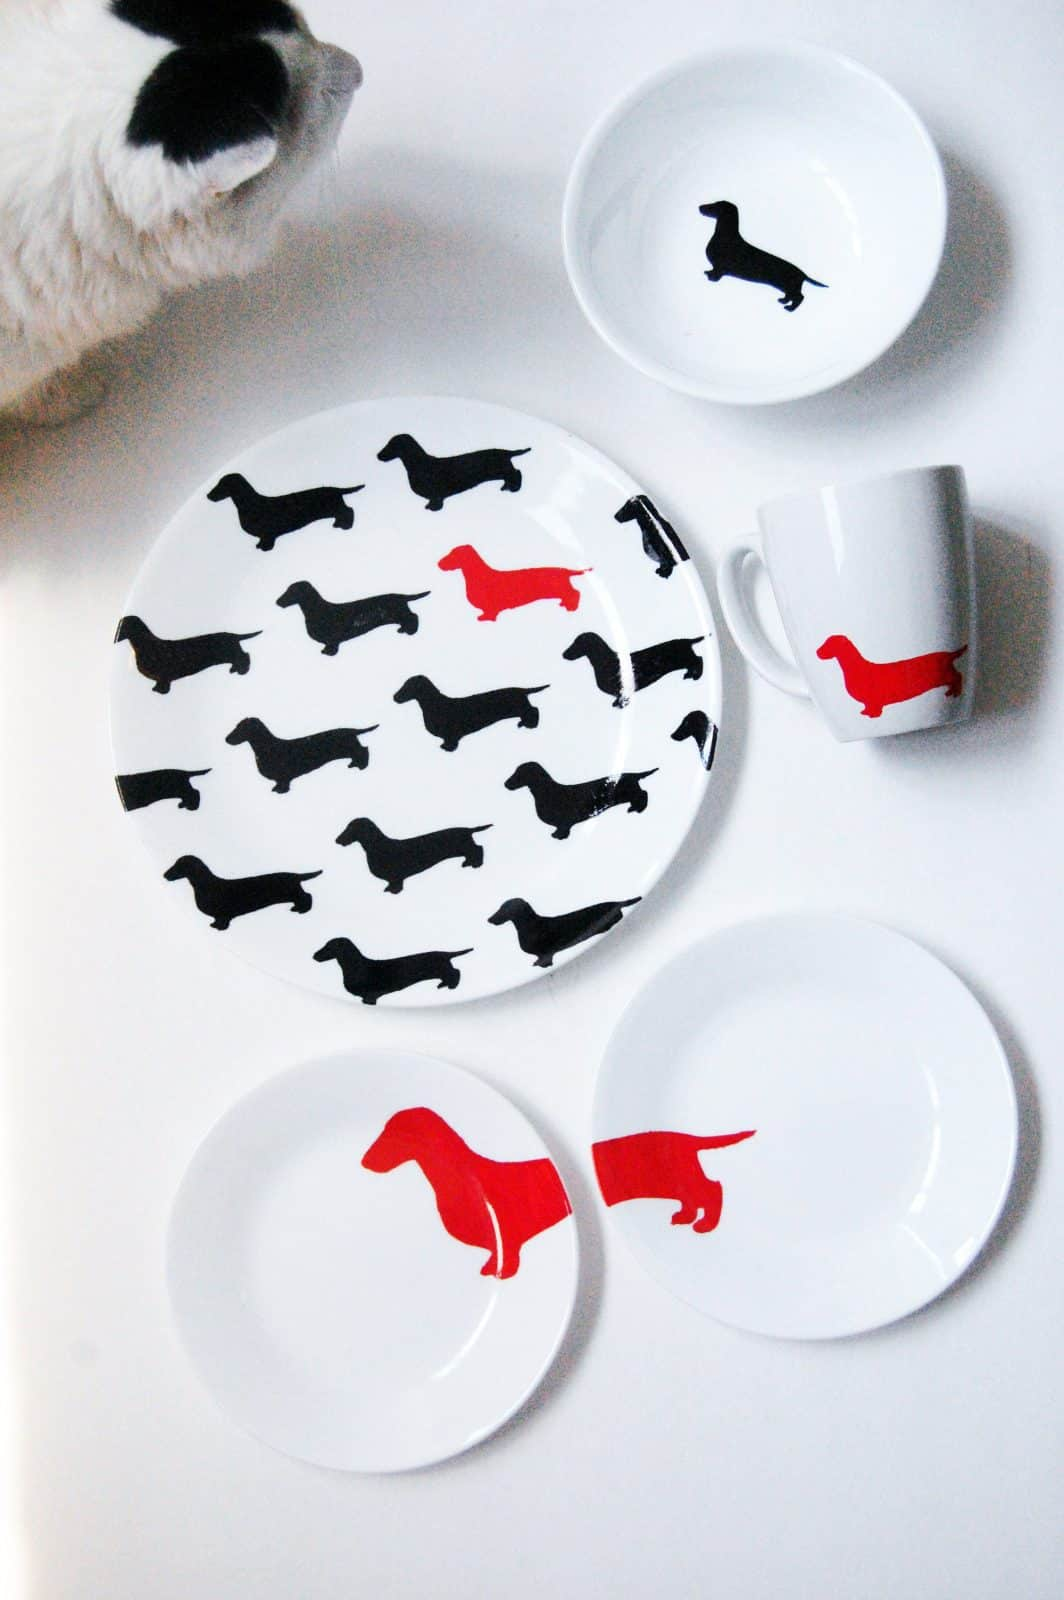 Kate Spade Inspired DIY Dachshund Dish Set